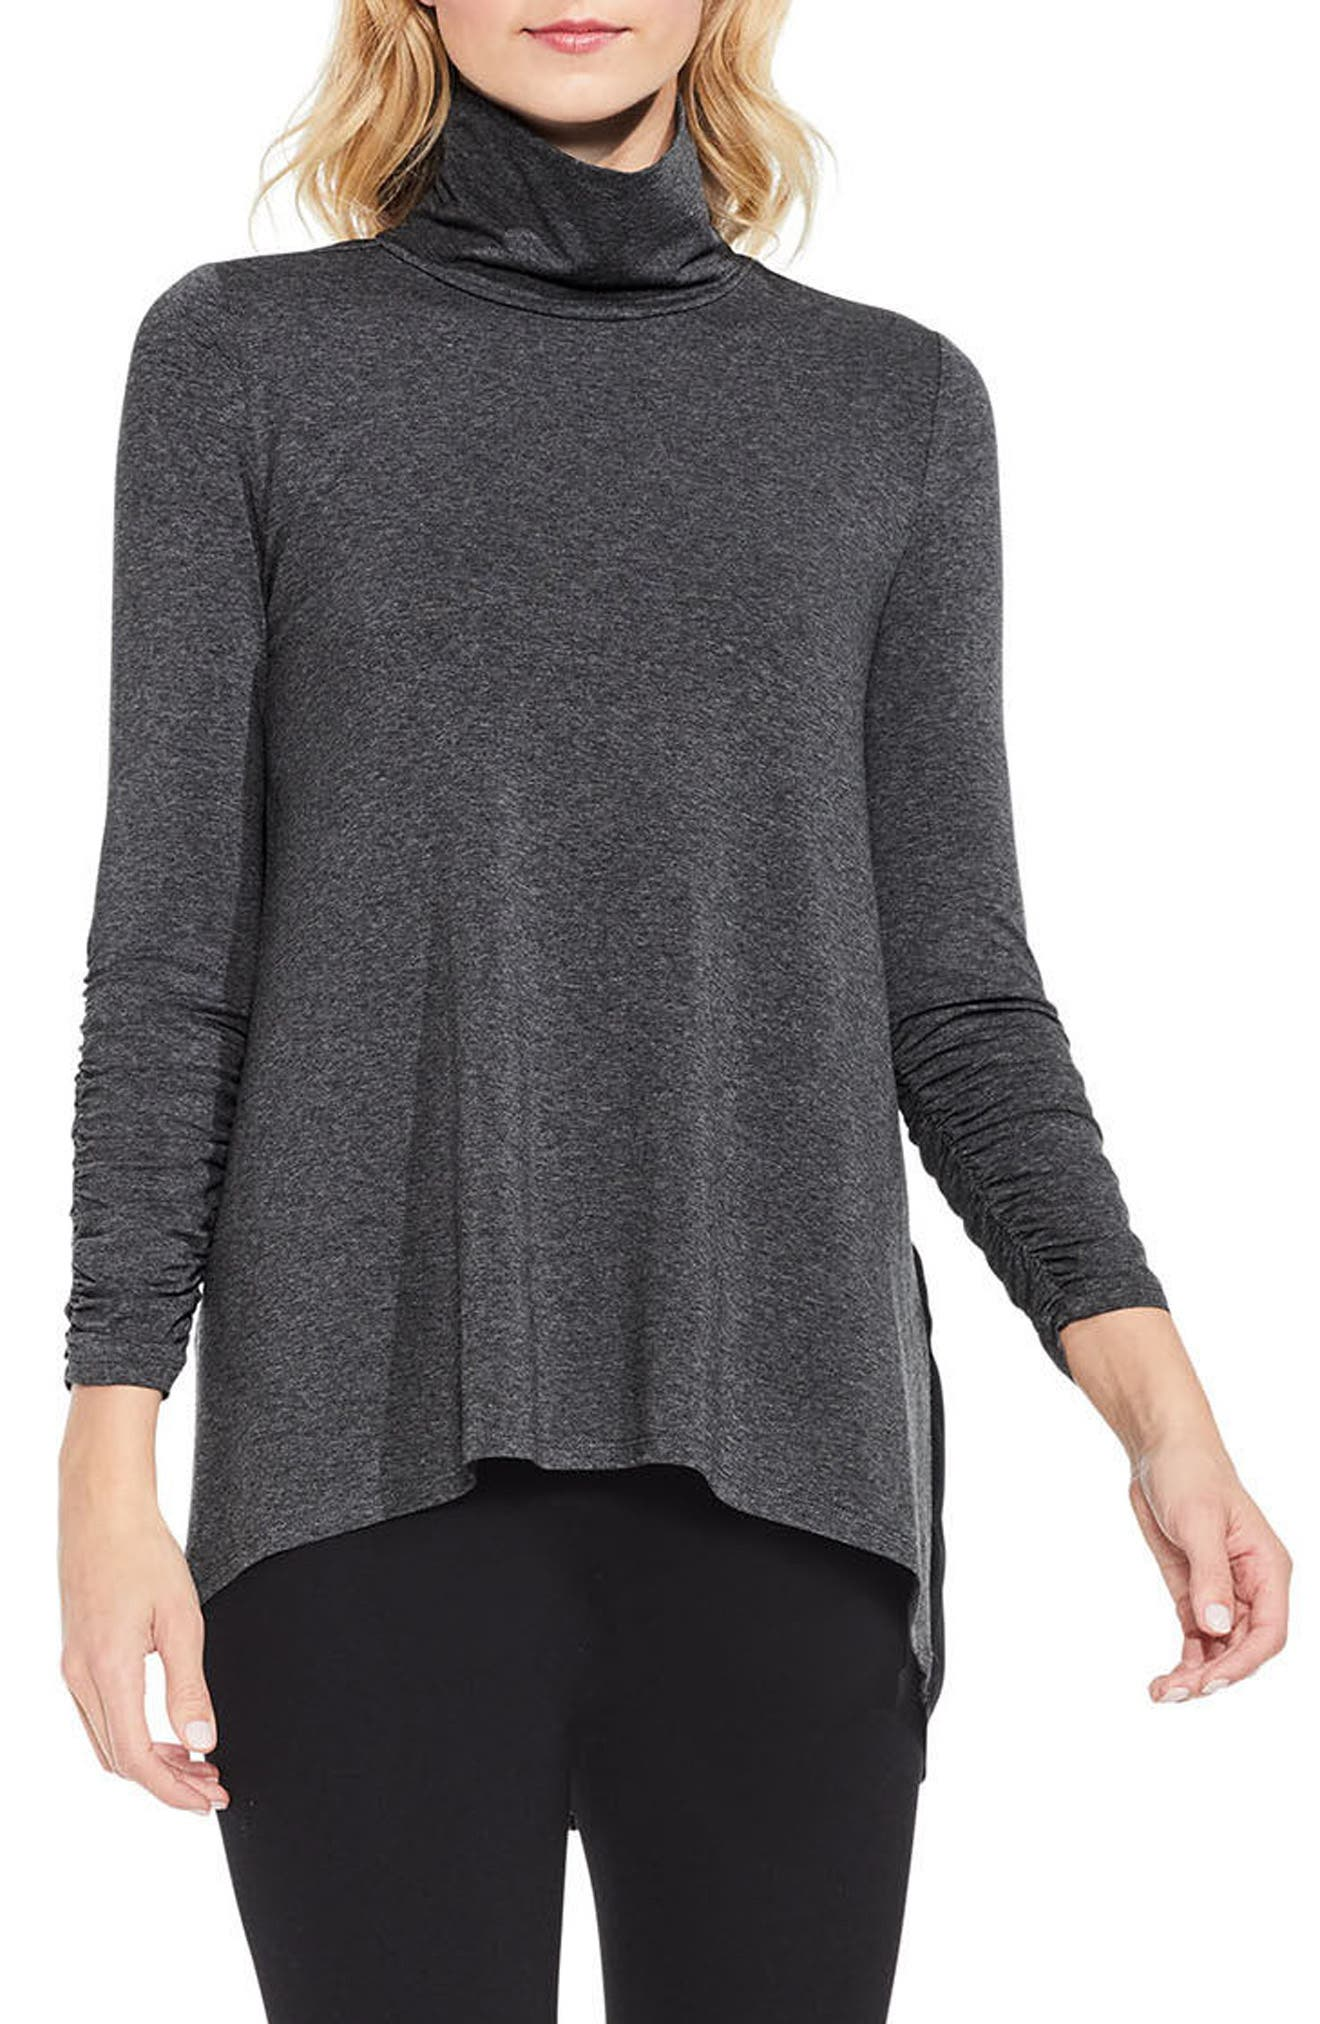 Alternate Image 1 Selected - Vince Camuto Ruched Sleeve Turtleneck